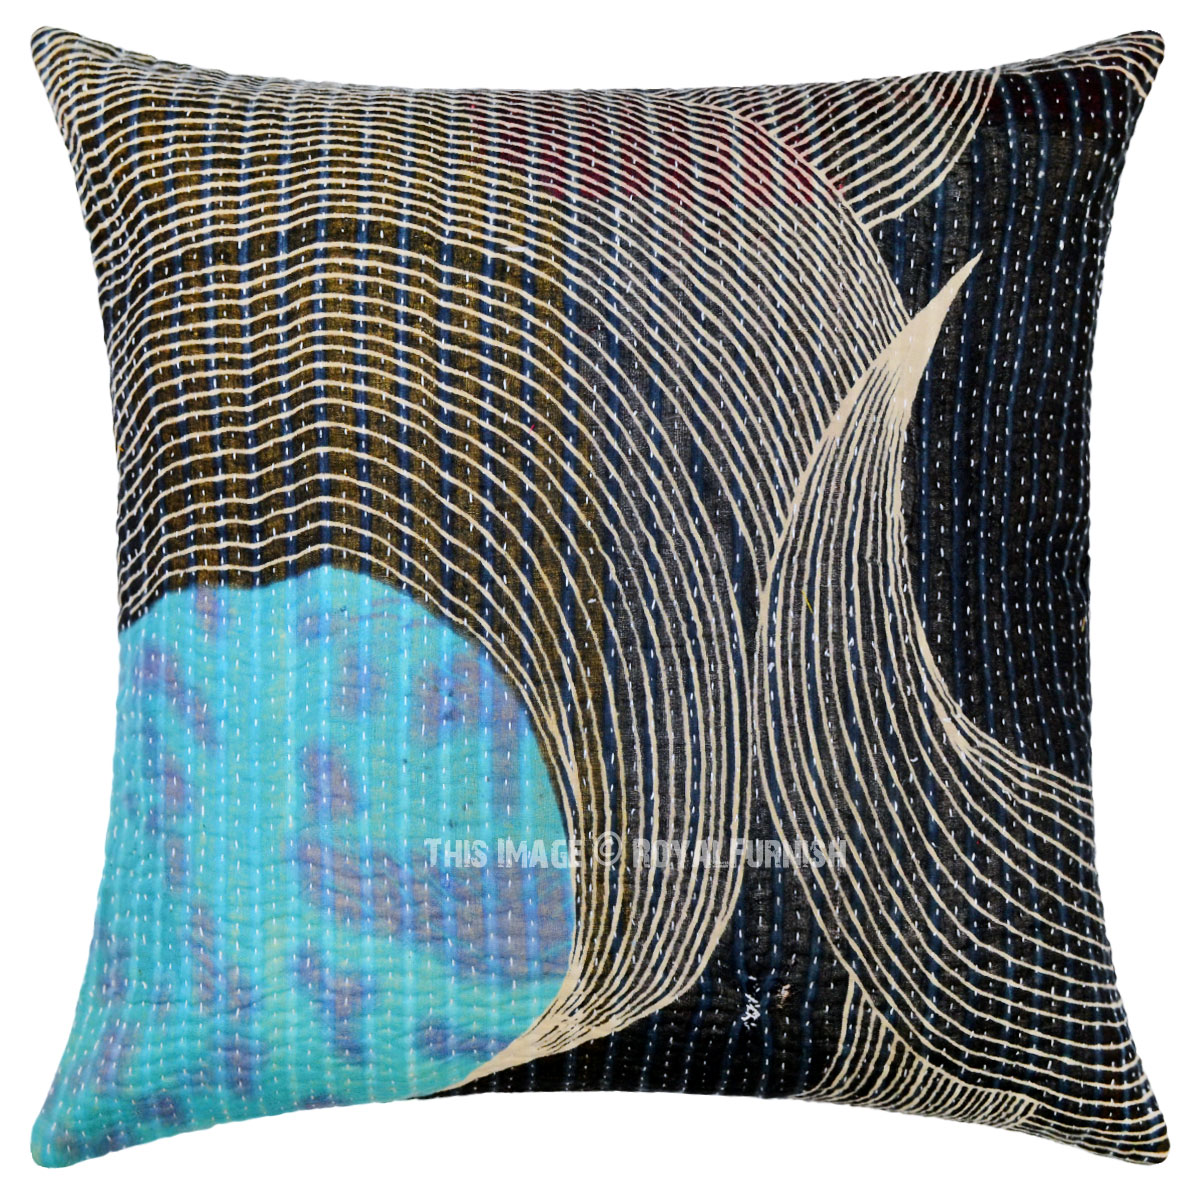 Unique Decorative Throw Pillows : Black Unique One-Of-A-Kind Decorative Vintage Kantha Pillow Cover - RoyalFurnish.com